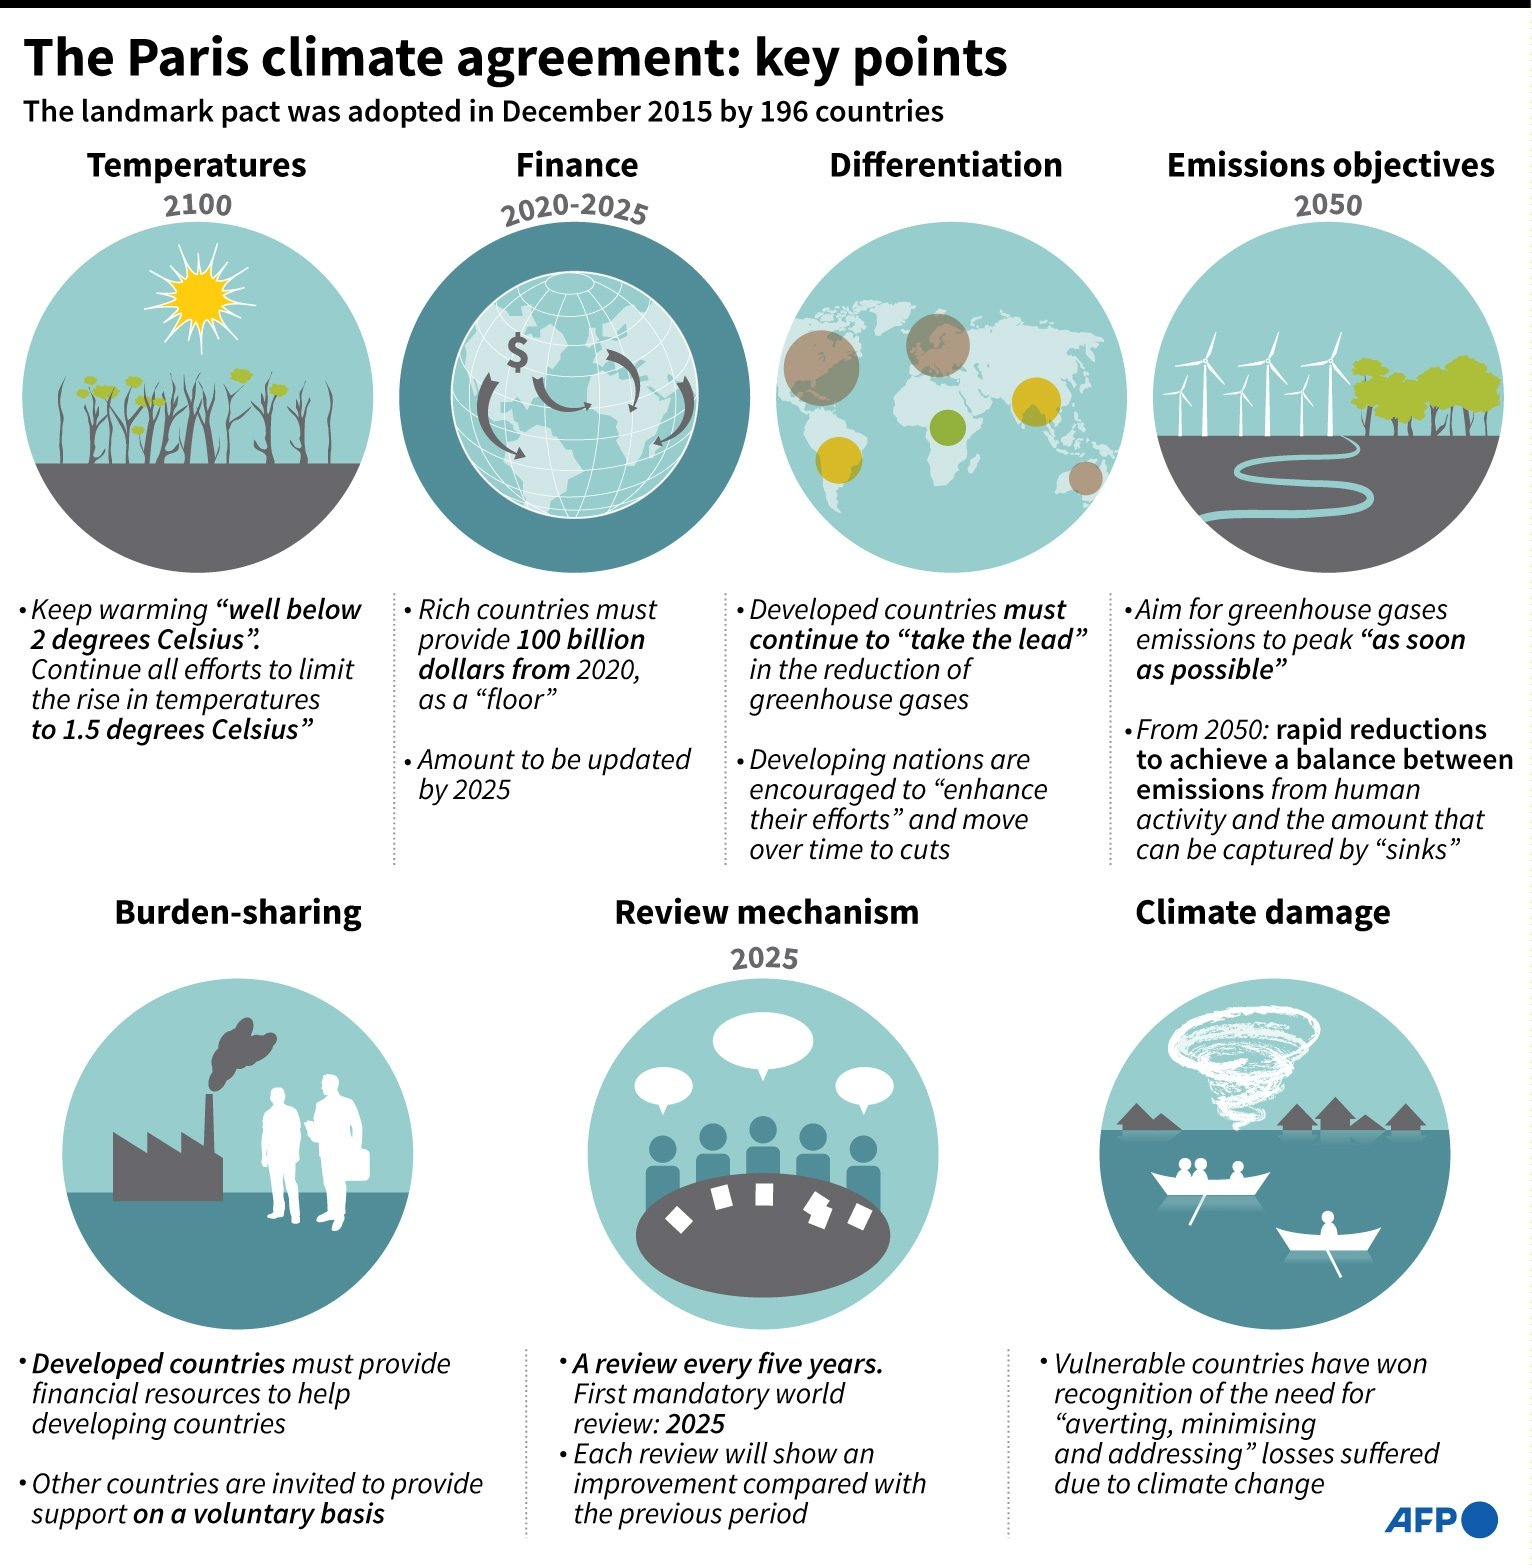 Graphic showing the key points from the Paris climate agreement, implemented by 196 countries in December 2015. (AFP infographic)